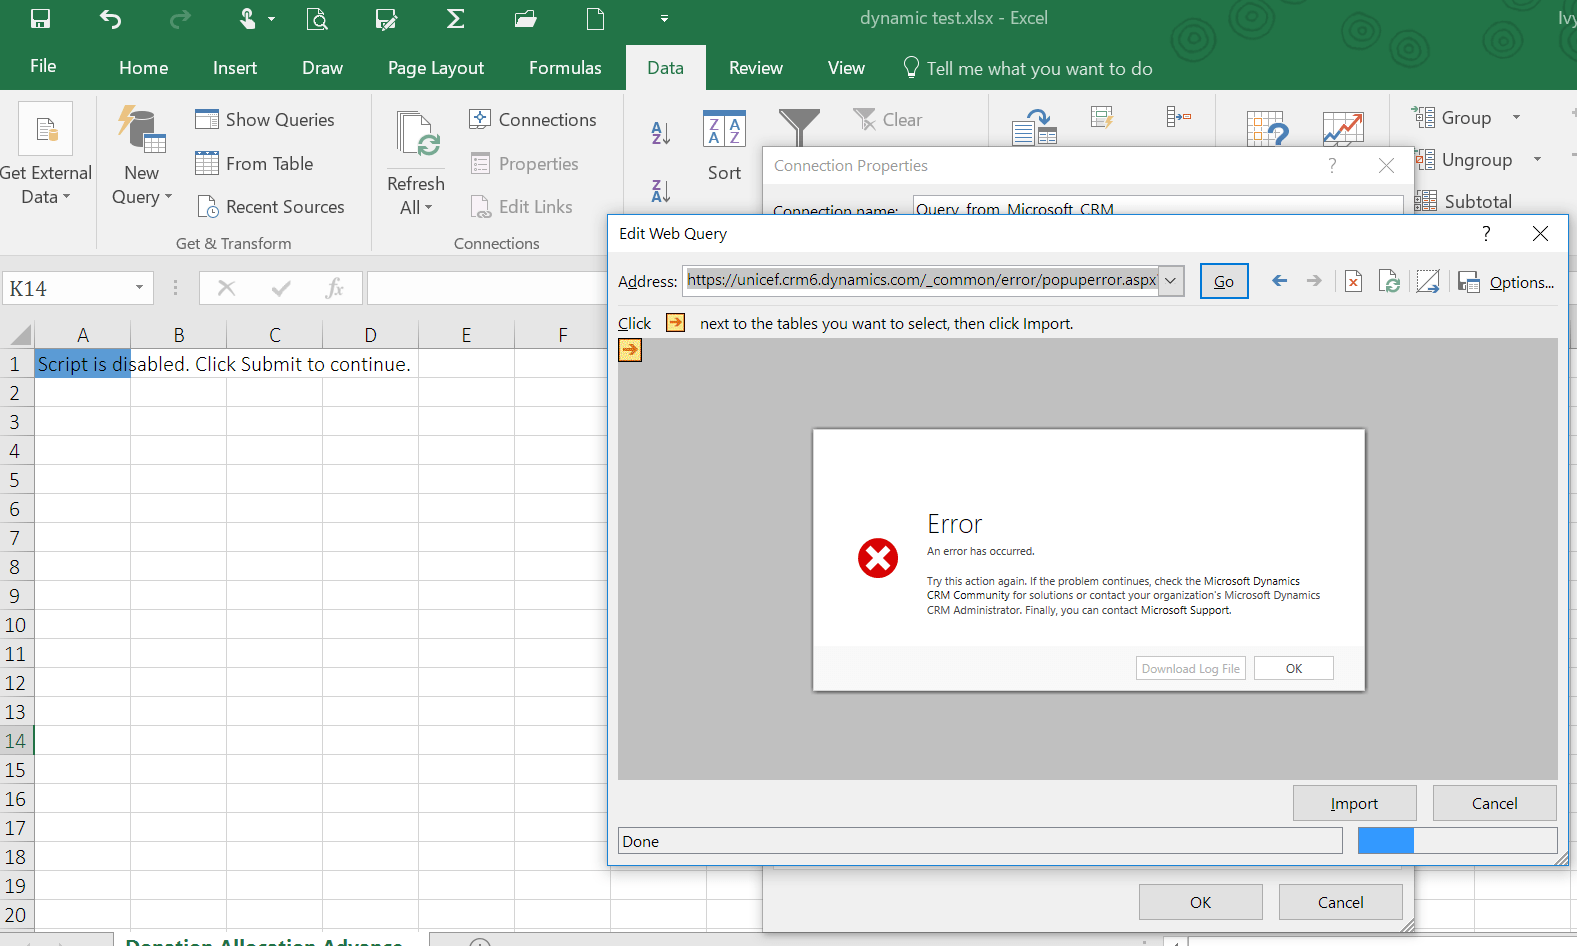 Dynamic Worksheet Unable To Auto Refresh